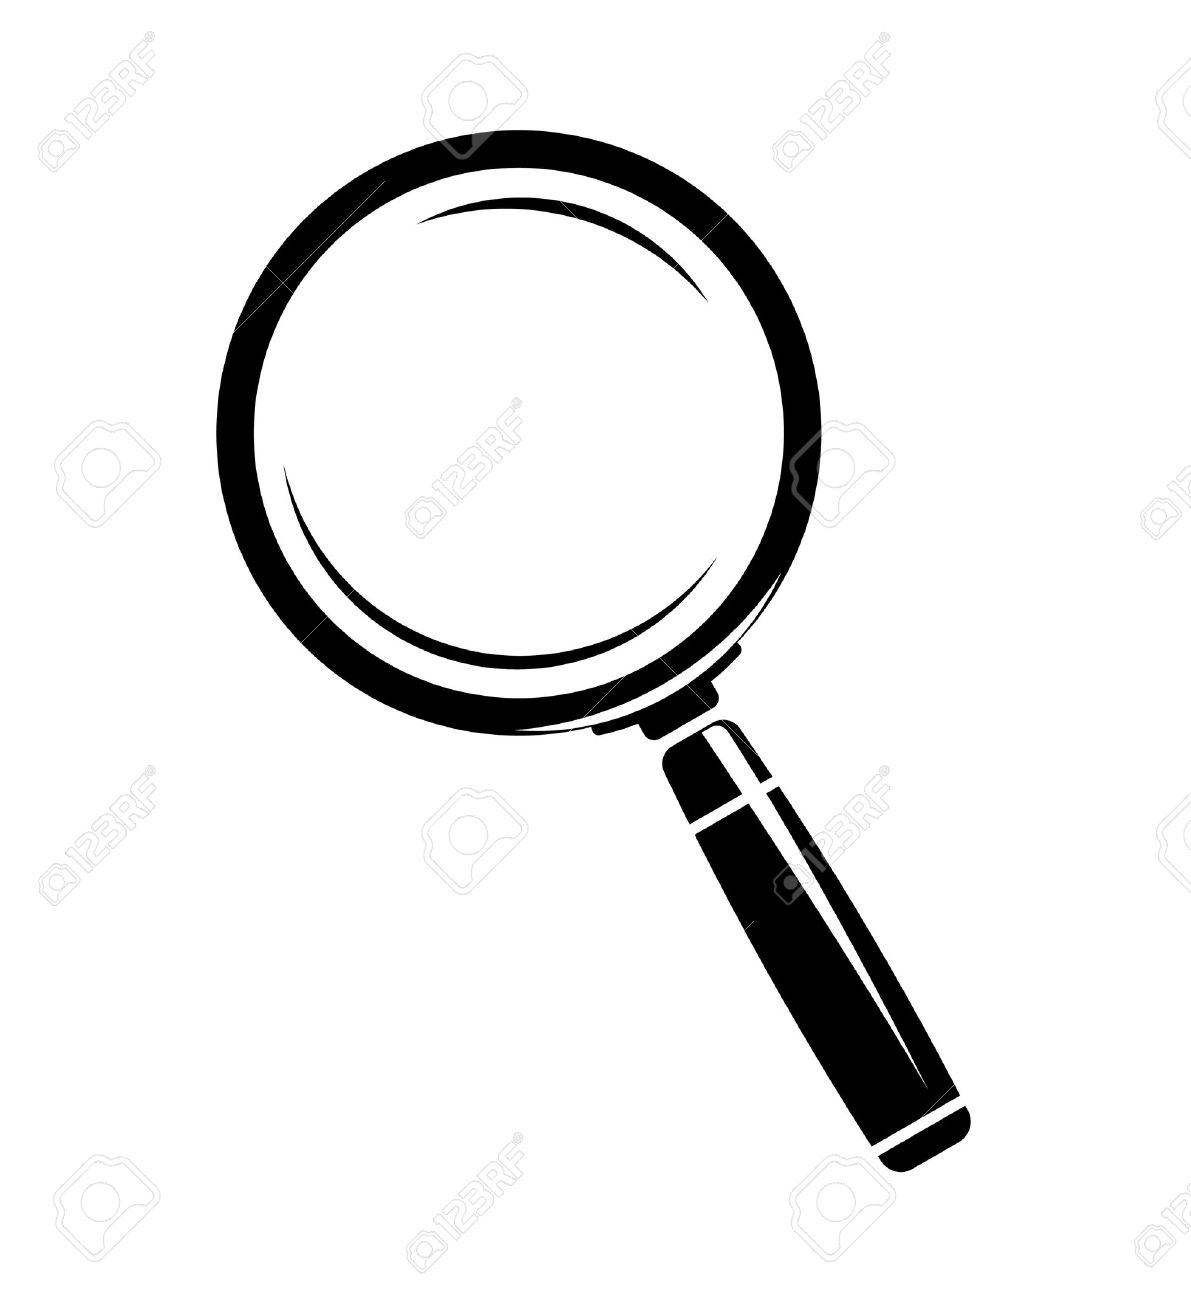 monochromatic magnifying glass icon royalty free cliparts vectors